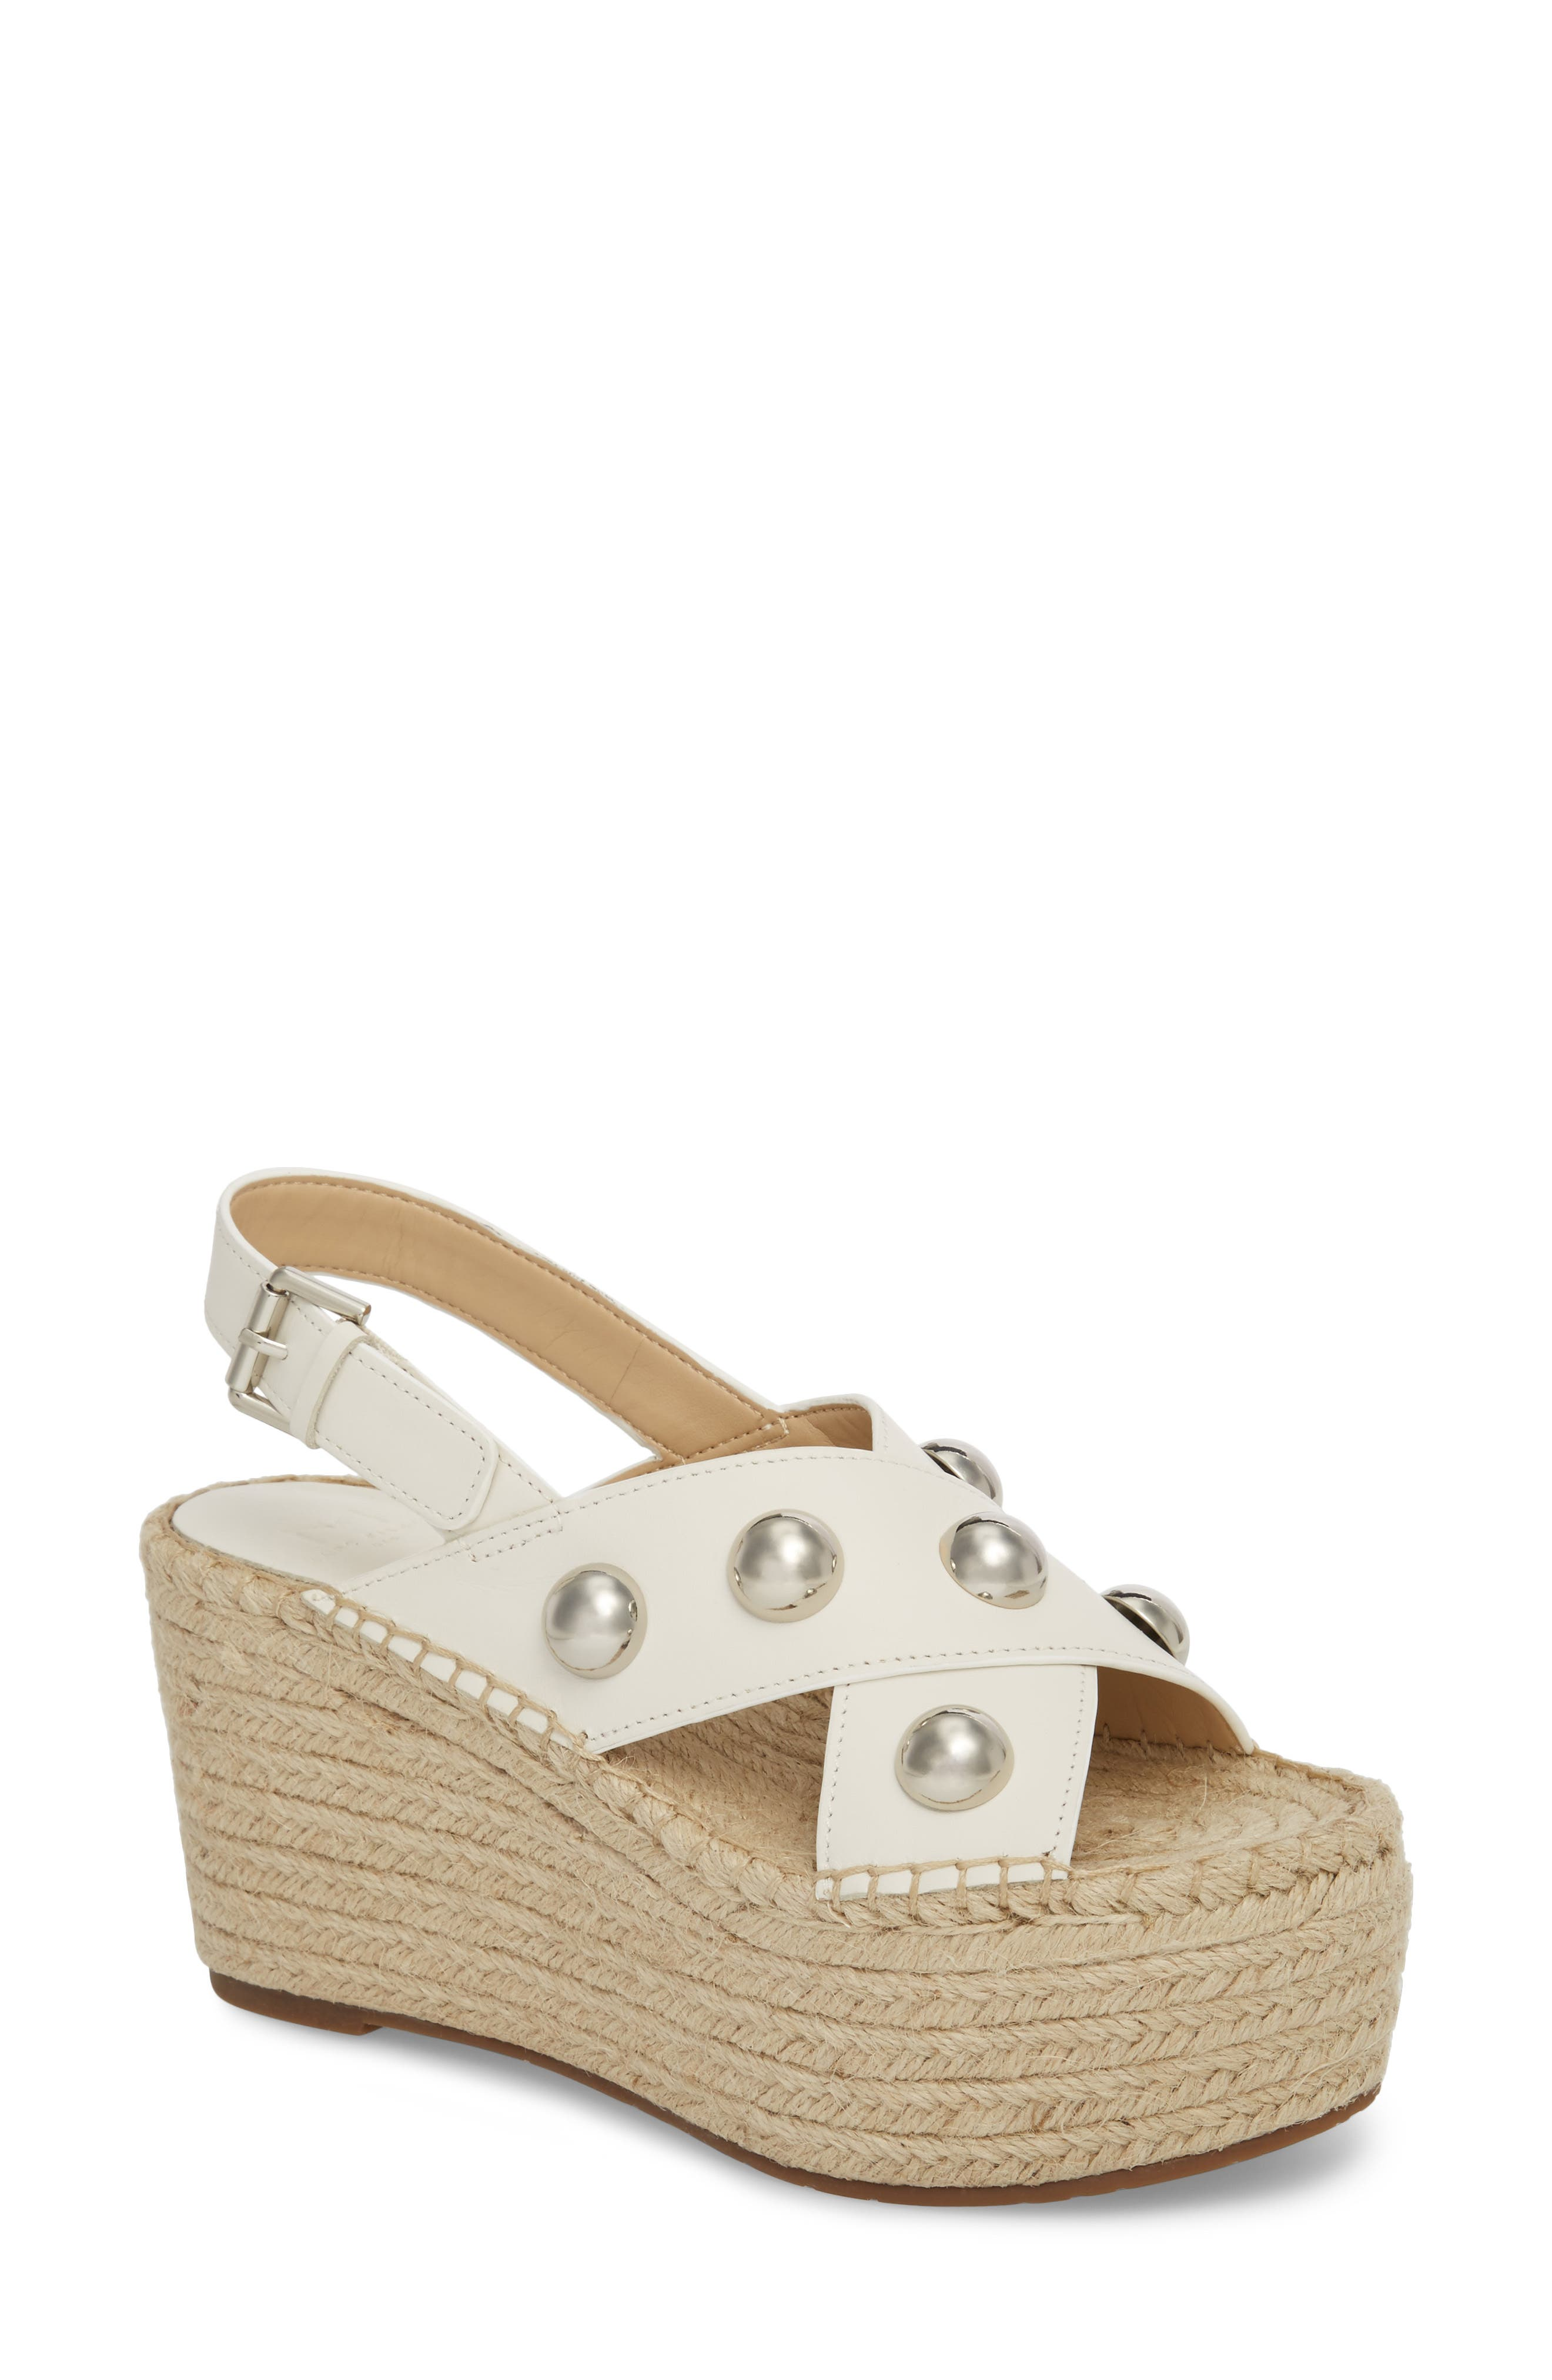 Rella Espadrille Platform Sandal,                         Main,                         color, Ivory Leather